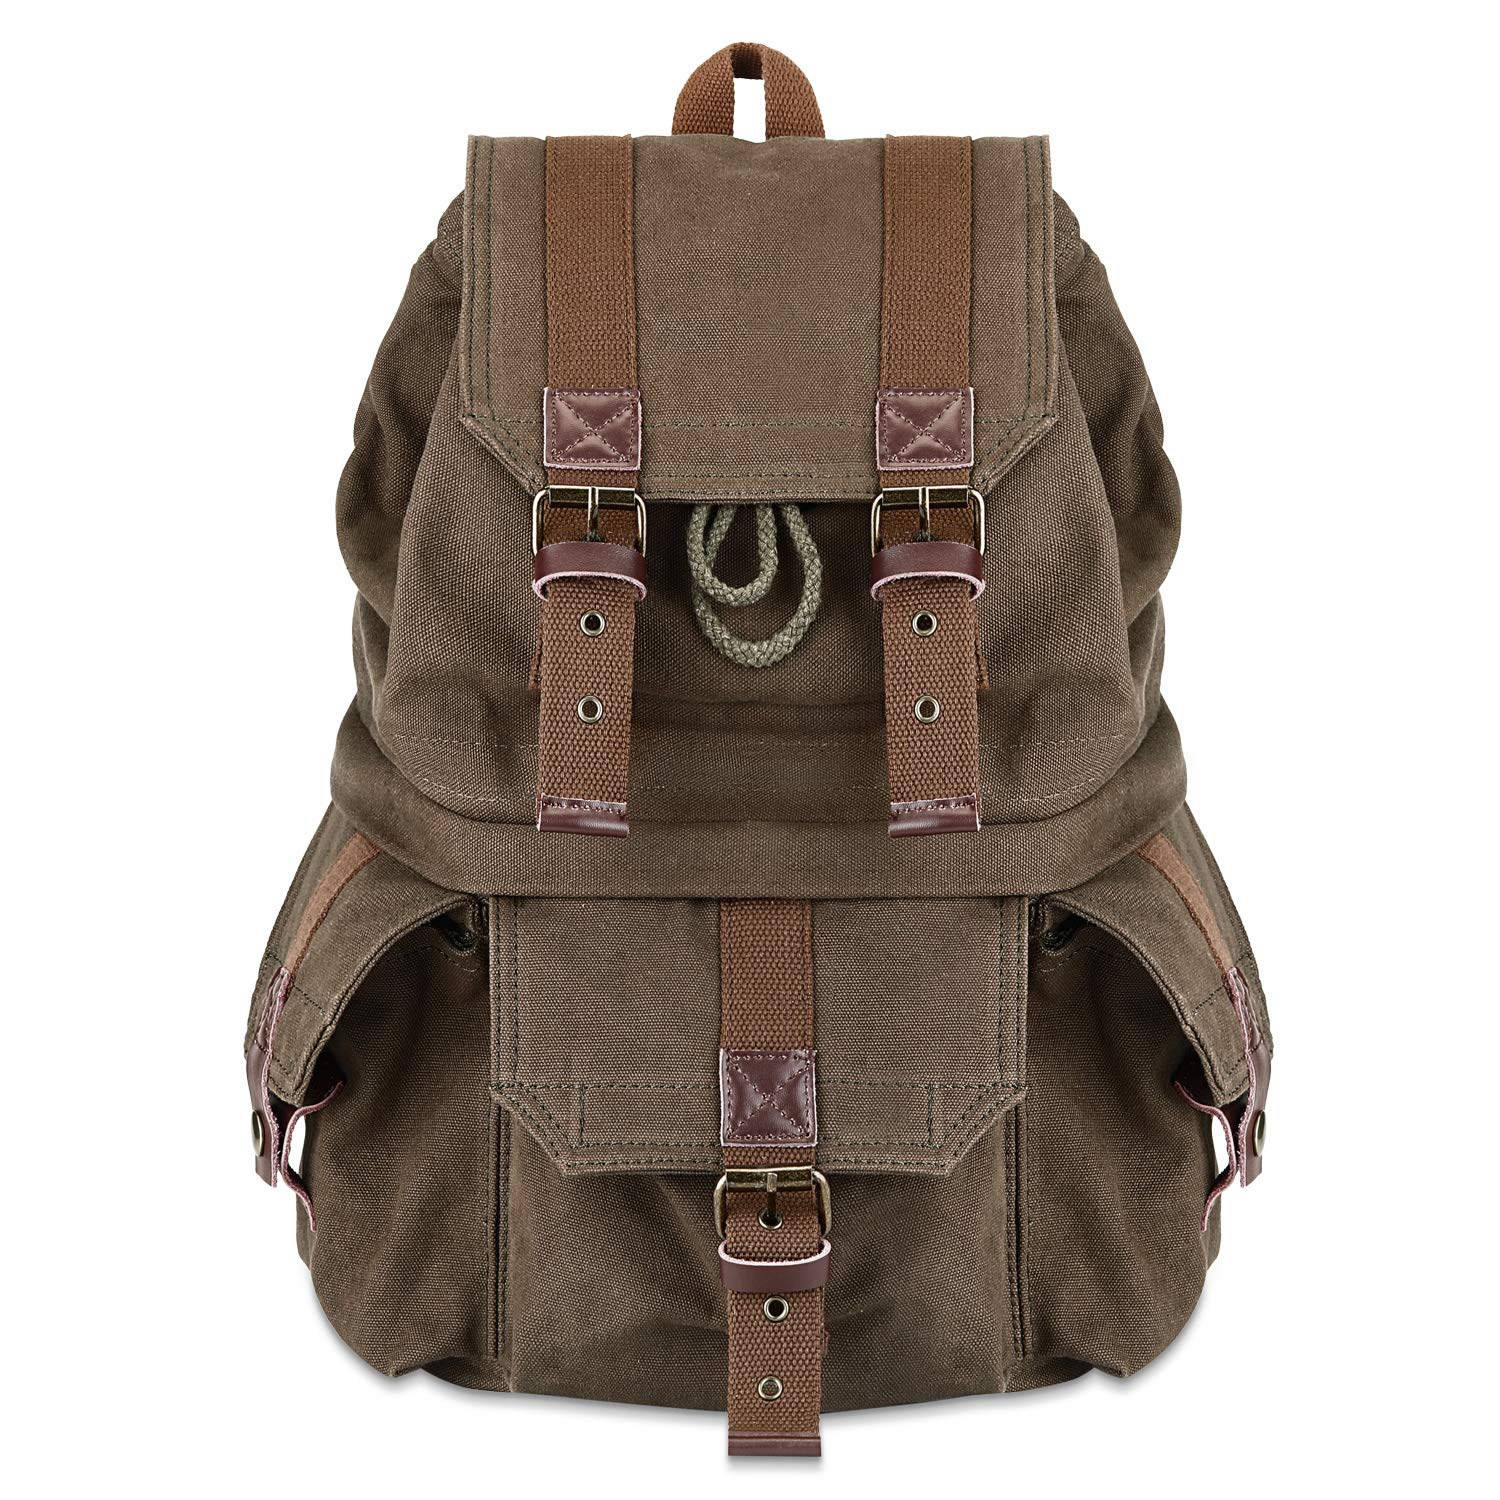 prime day kattee military style canvas dslr camera backpack